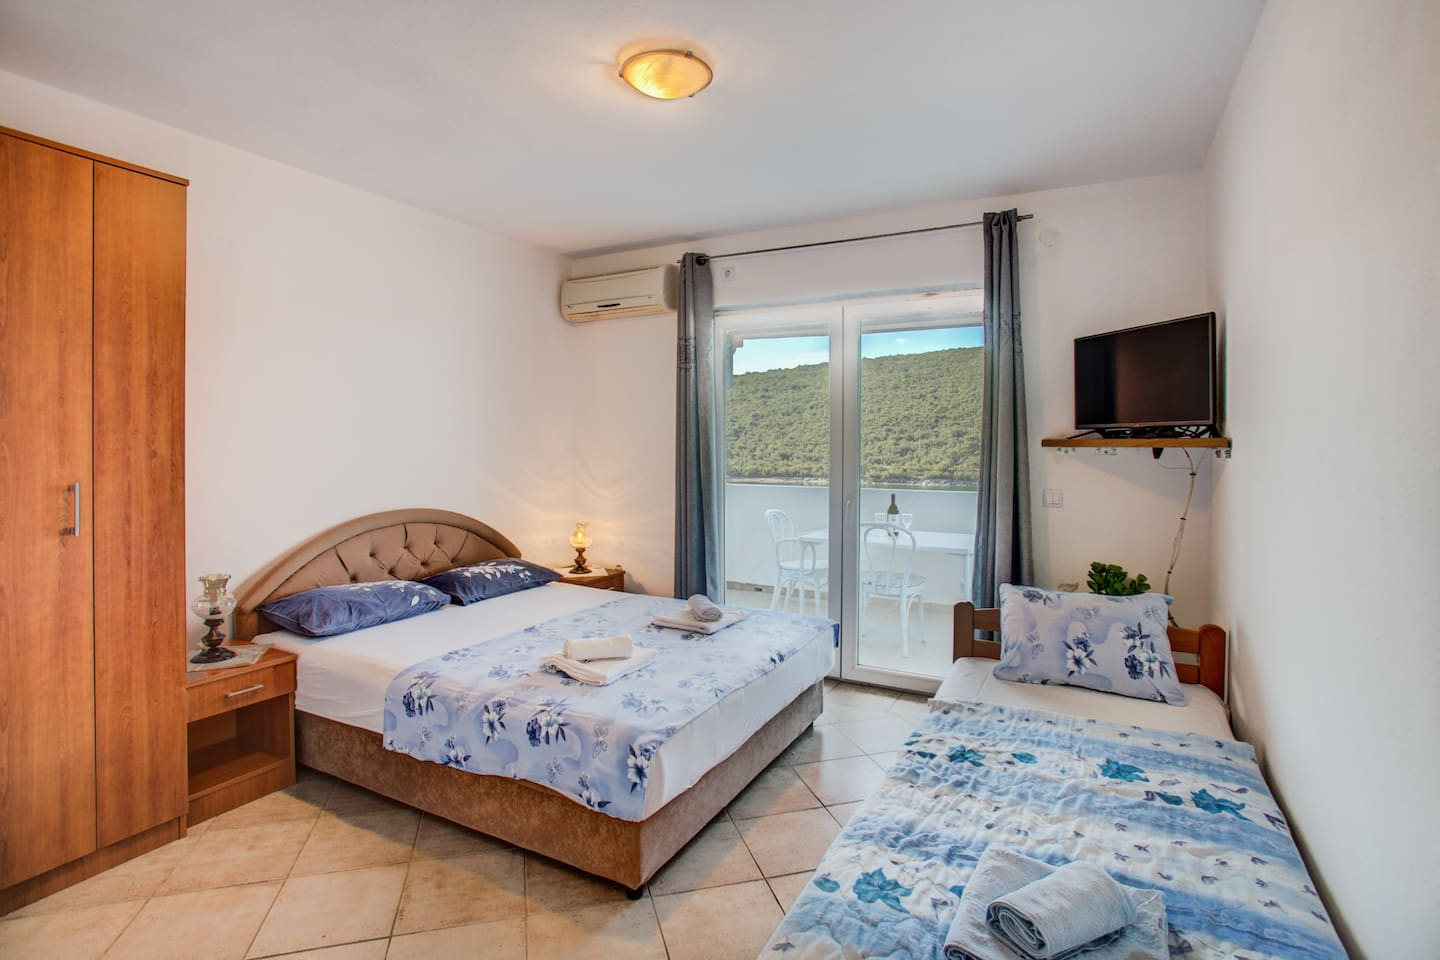 Located in small, once fishing village Bigova, with a unique sea-view, Vesna apartments are real summer oasis. Just 30m from the sea, this one bedroom apartment for 3 persons has a terrace with a sea view.